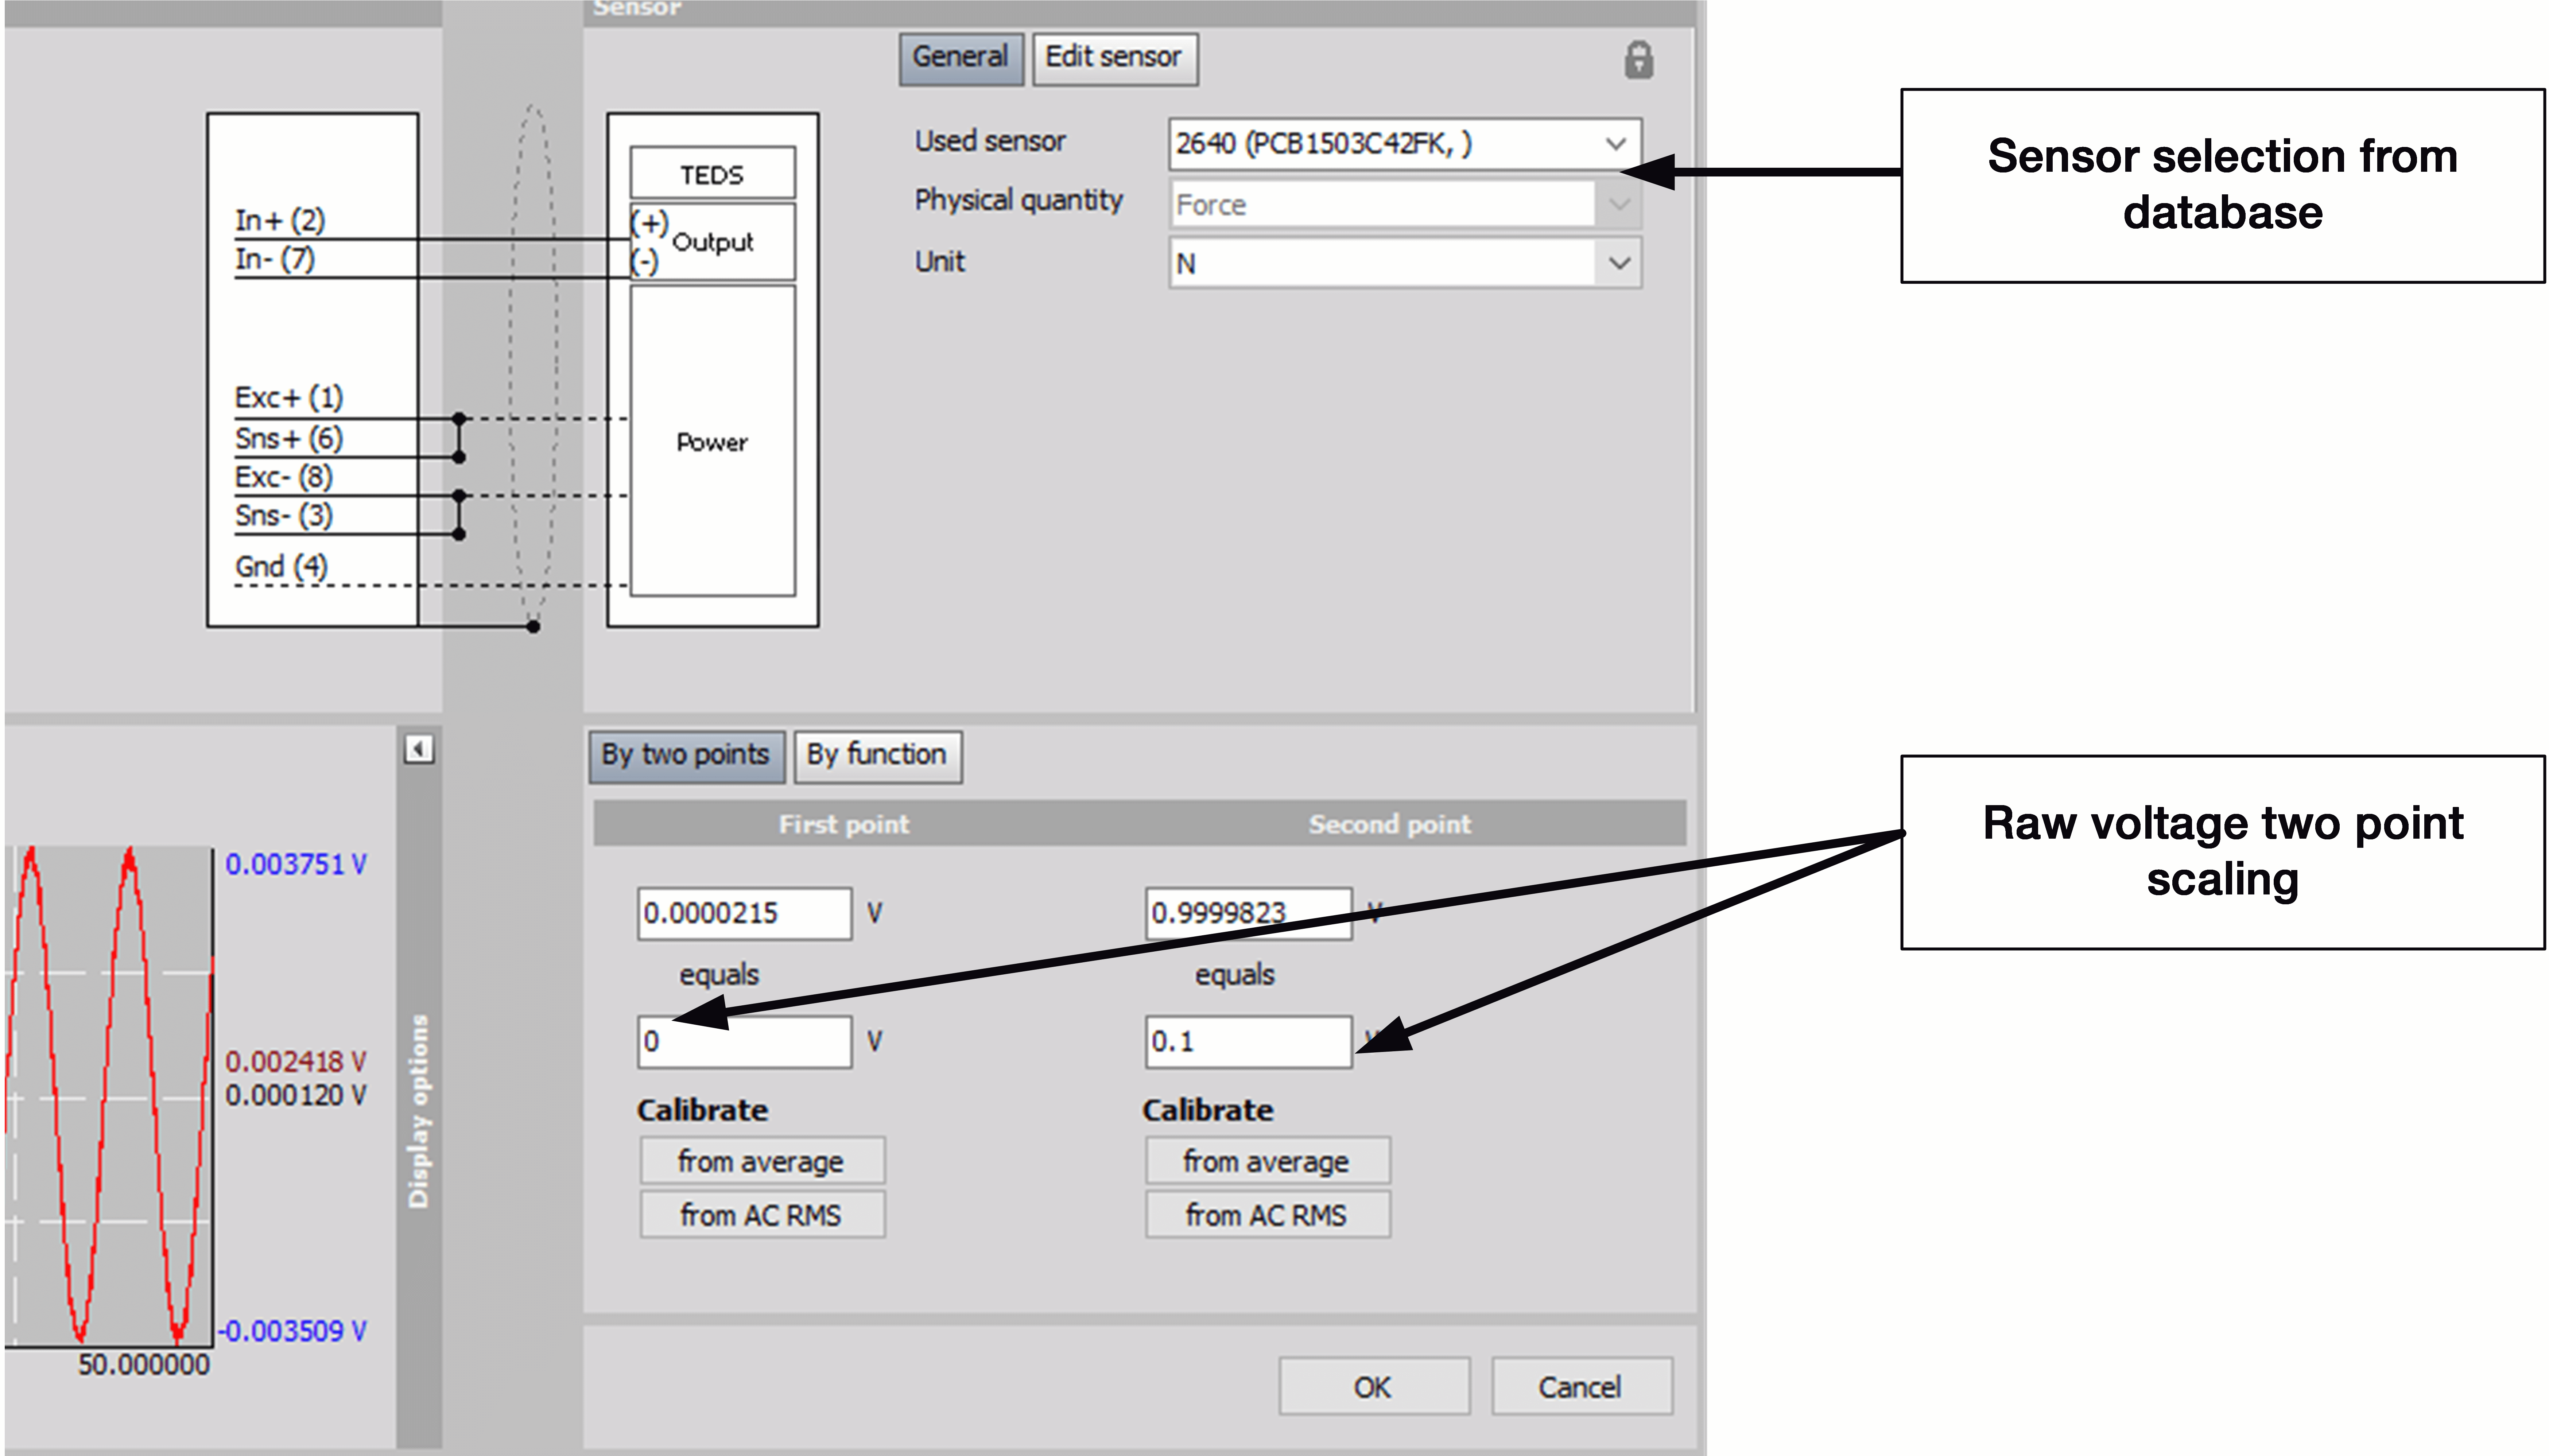 Analog channel setup for raw two-point scaling